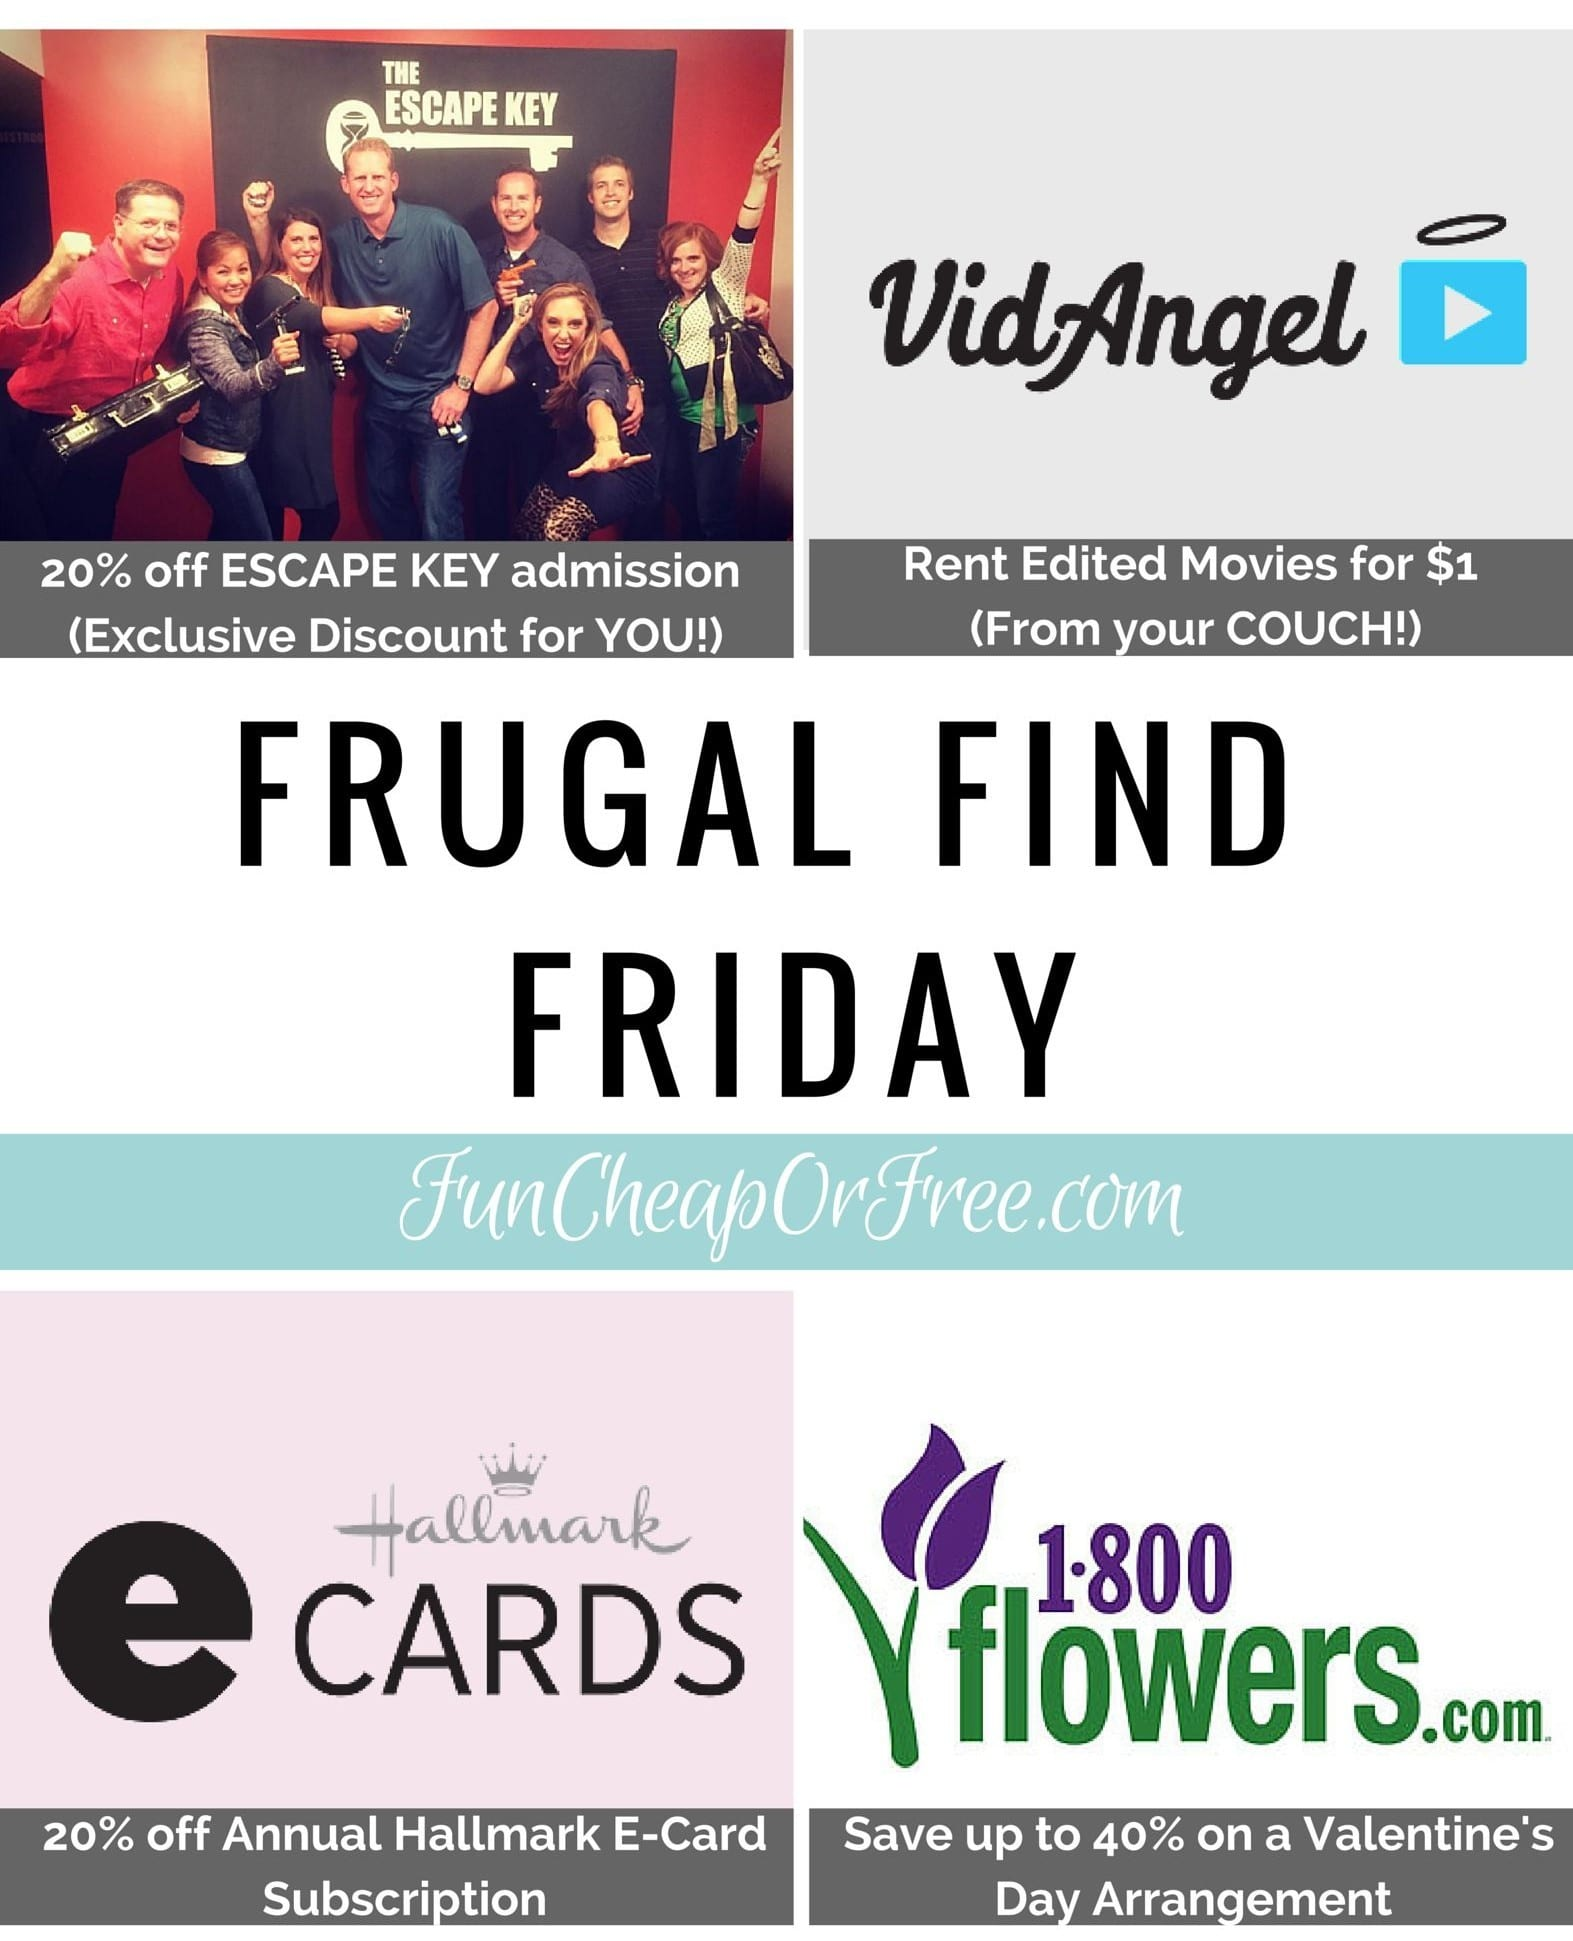 Frugal Finds for Date Night! Have you planned Valentine's Day with your sweetie? We can help! www.FunCheapOrFree.com